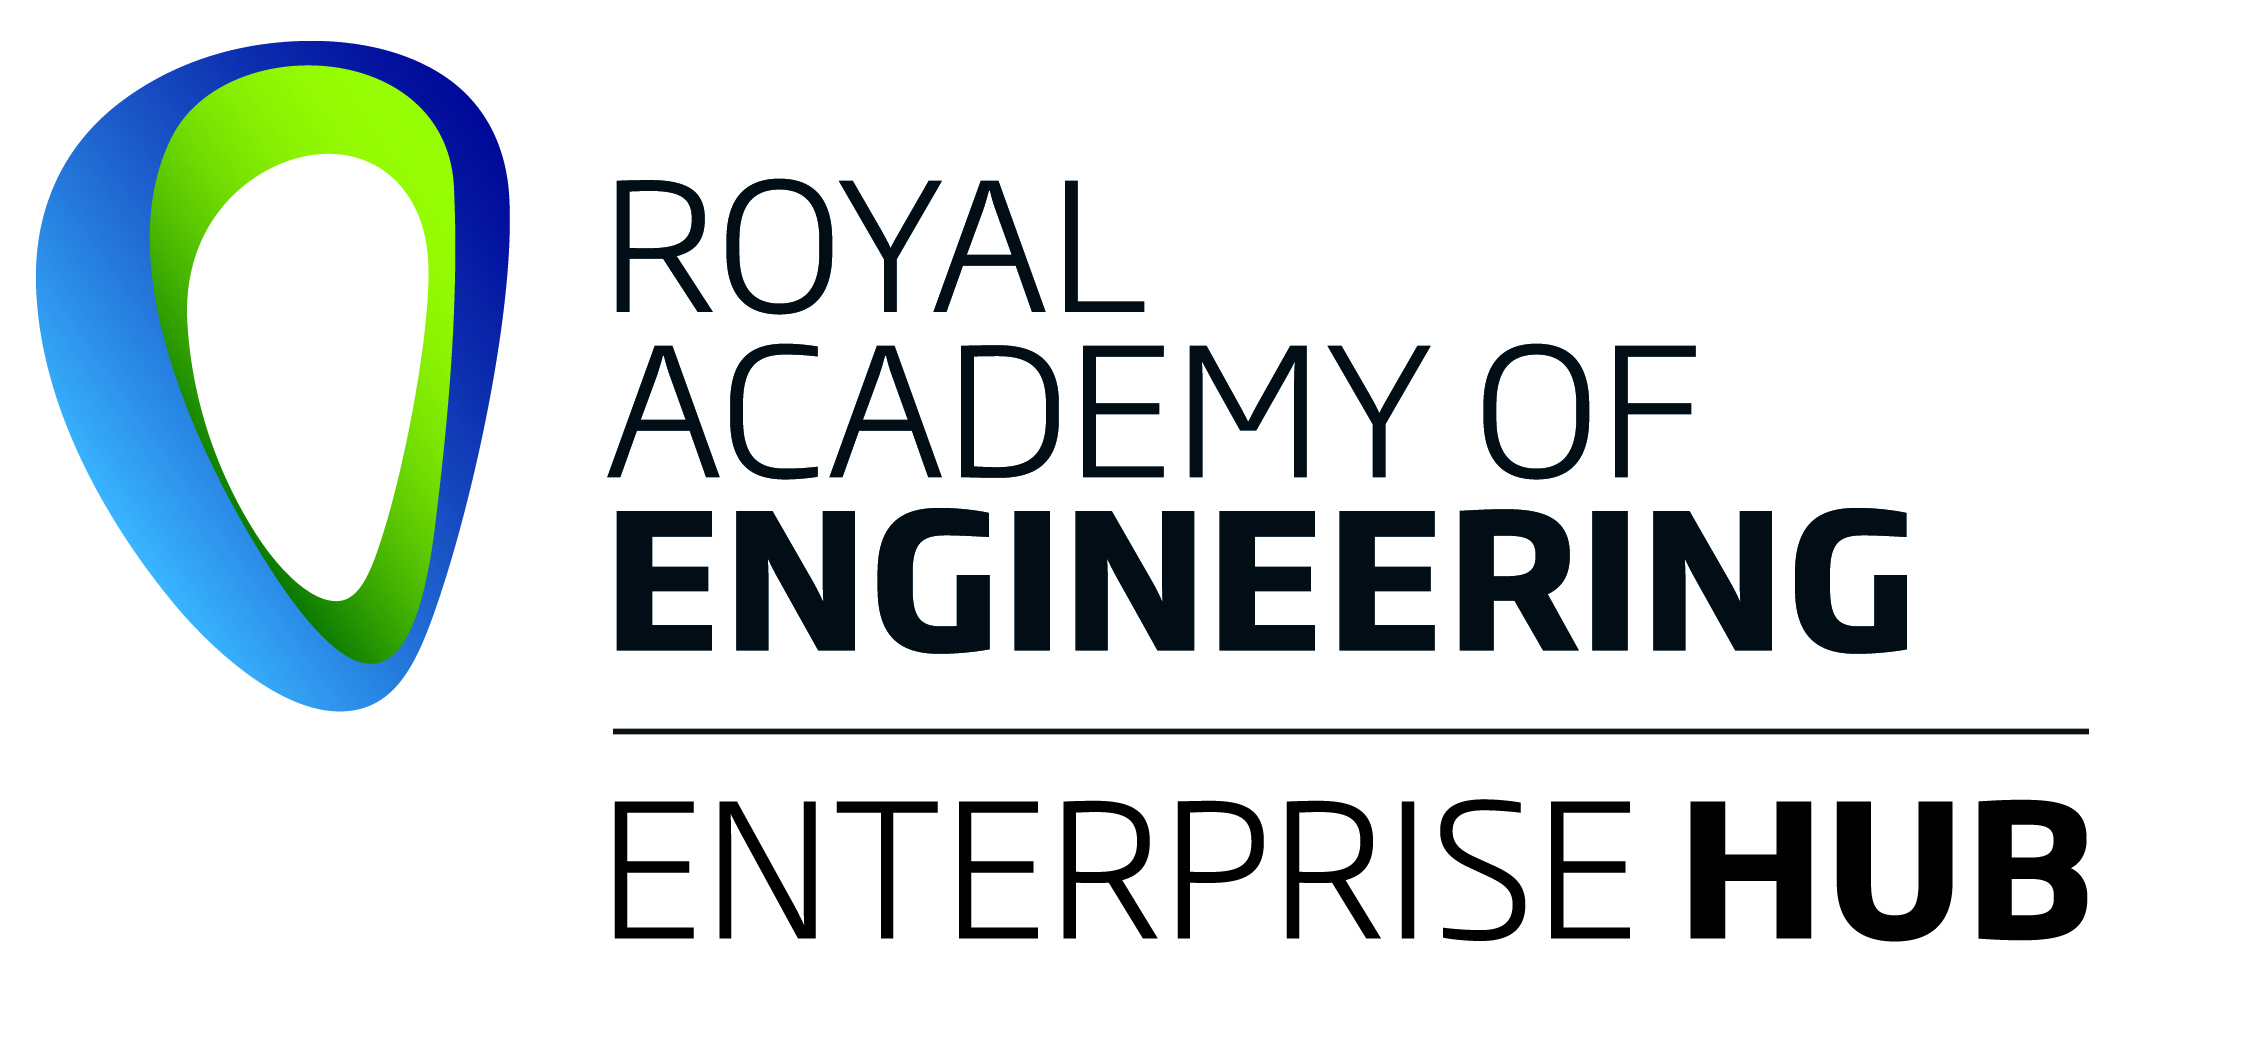 Royal Academy of Engineering Enterprise Hub